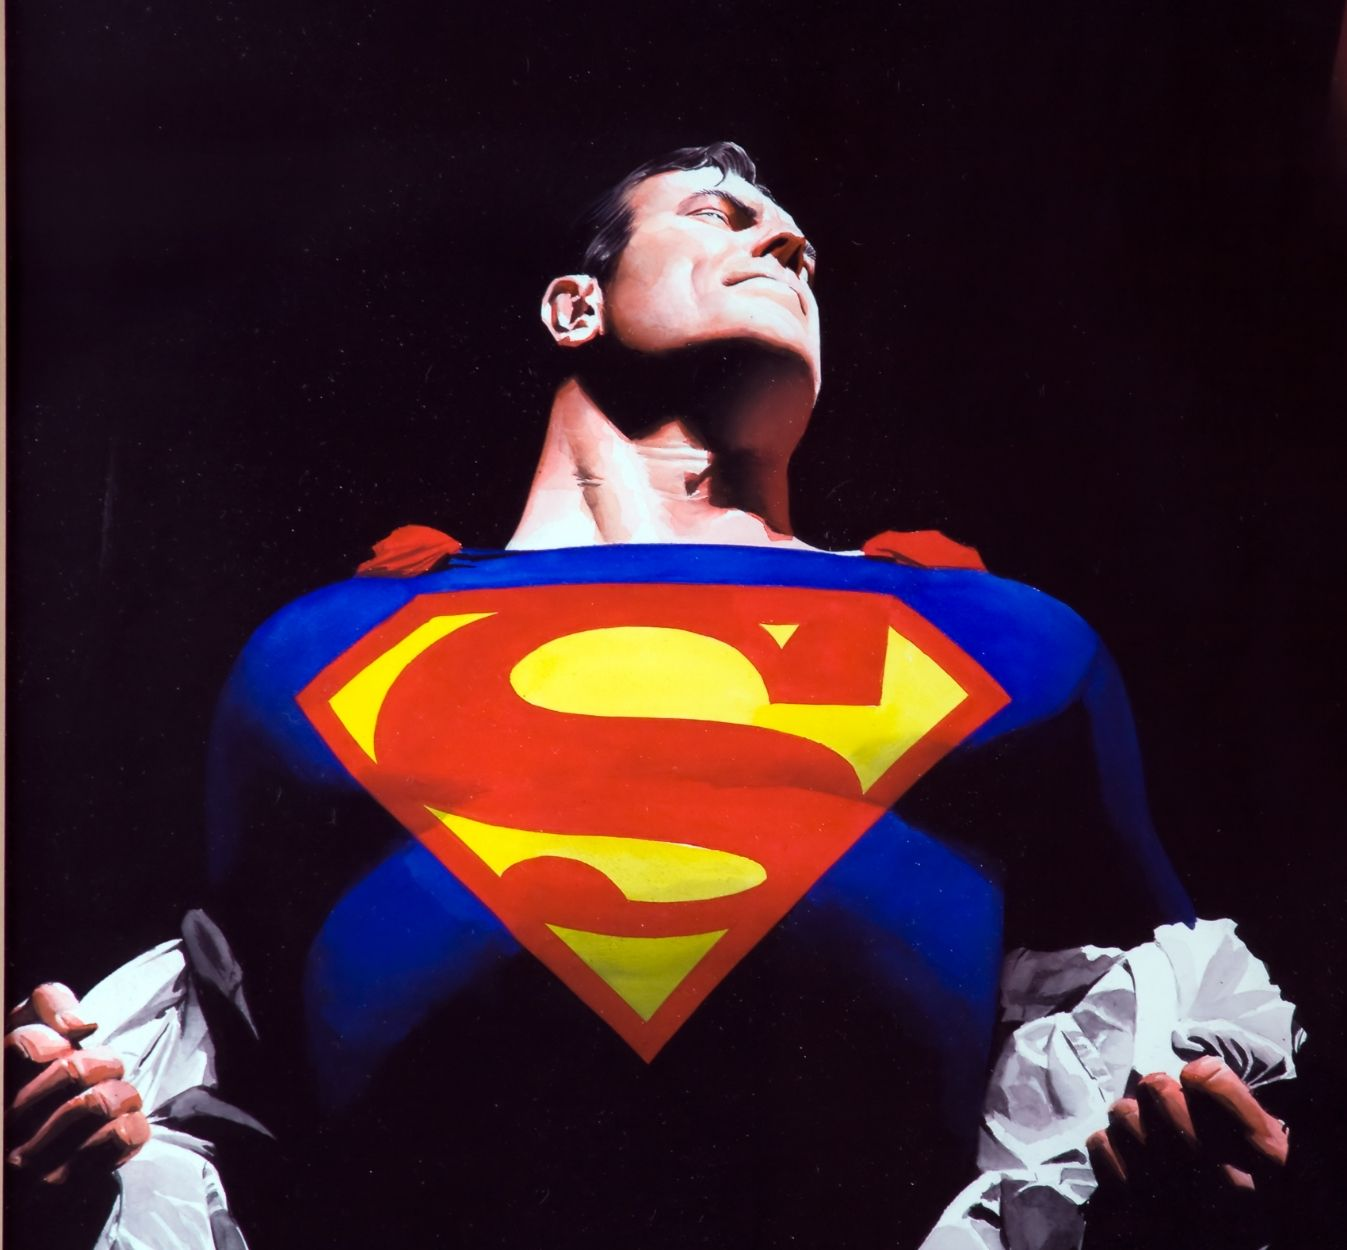 """""""Superman is, after all, an alien life form. He is simply the acceptable face of invading realities."""" Clive Barker"""